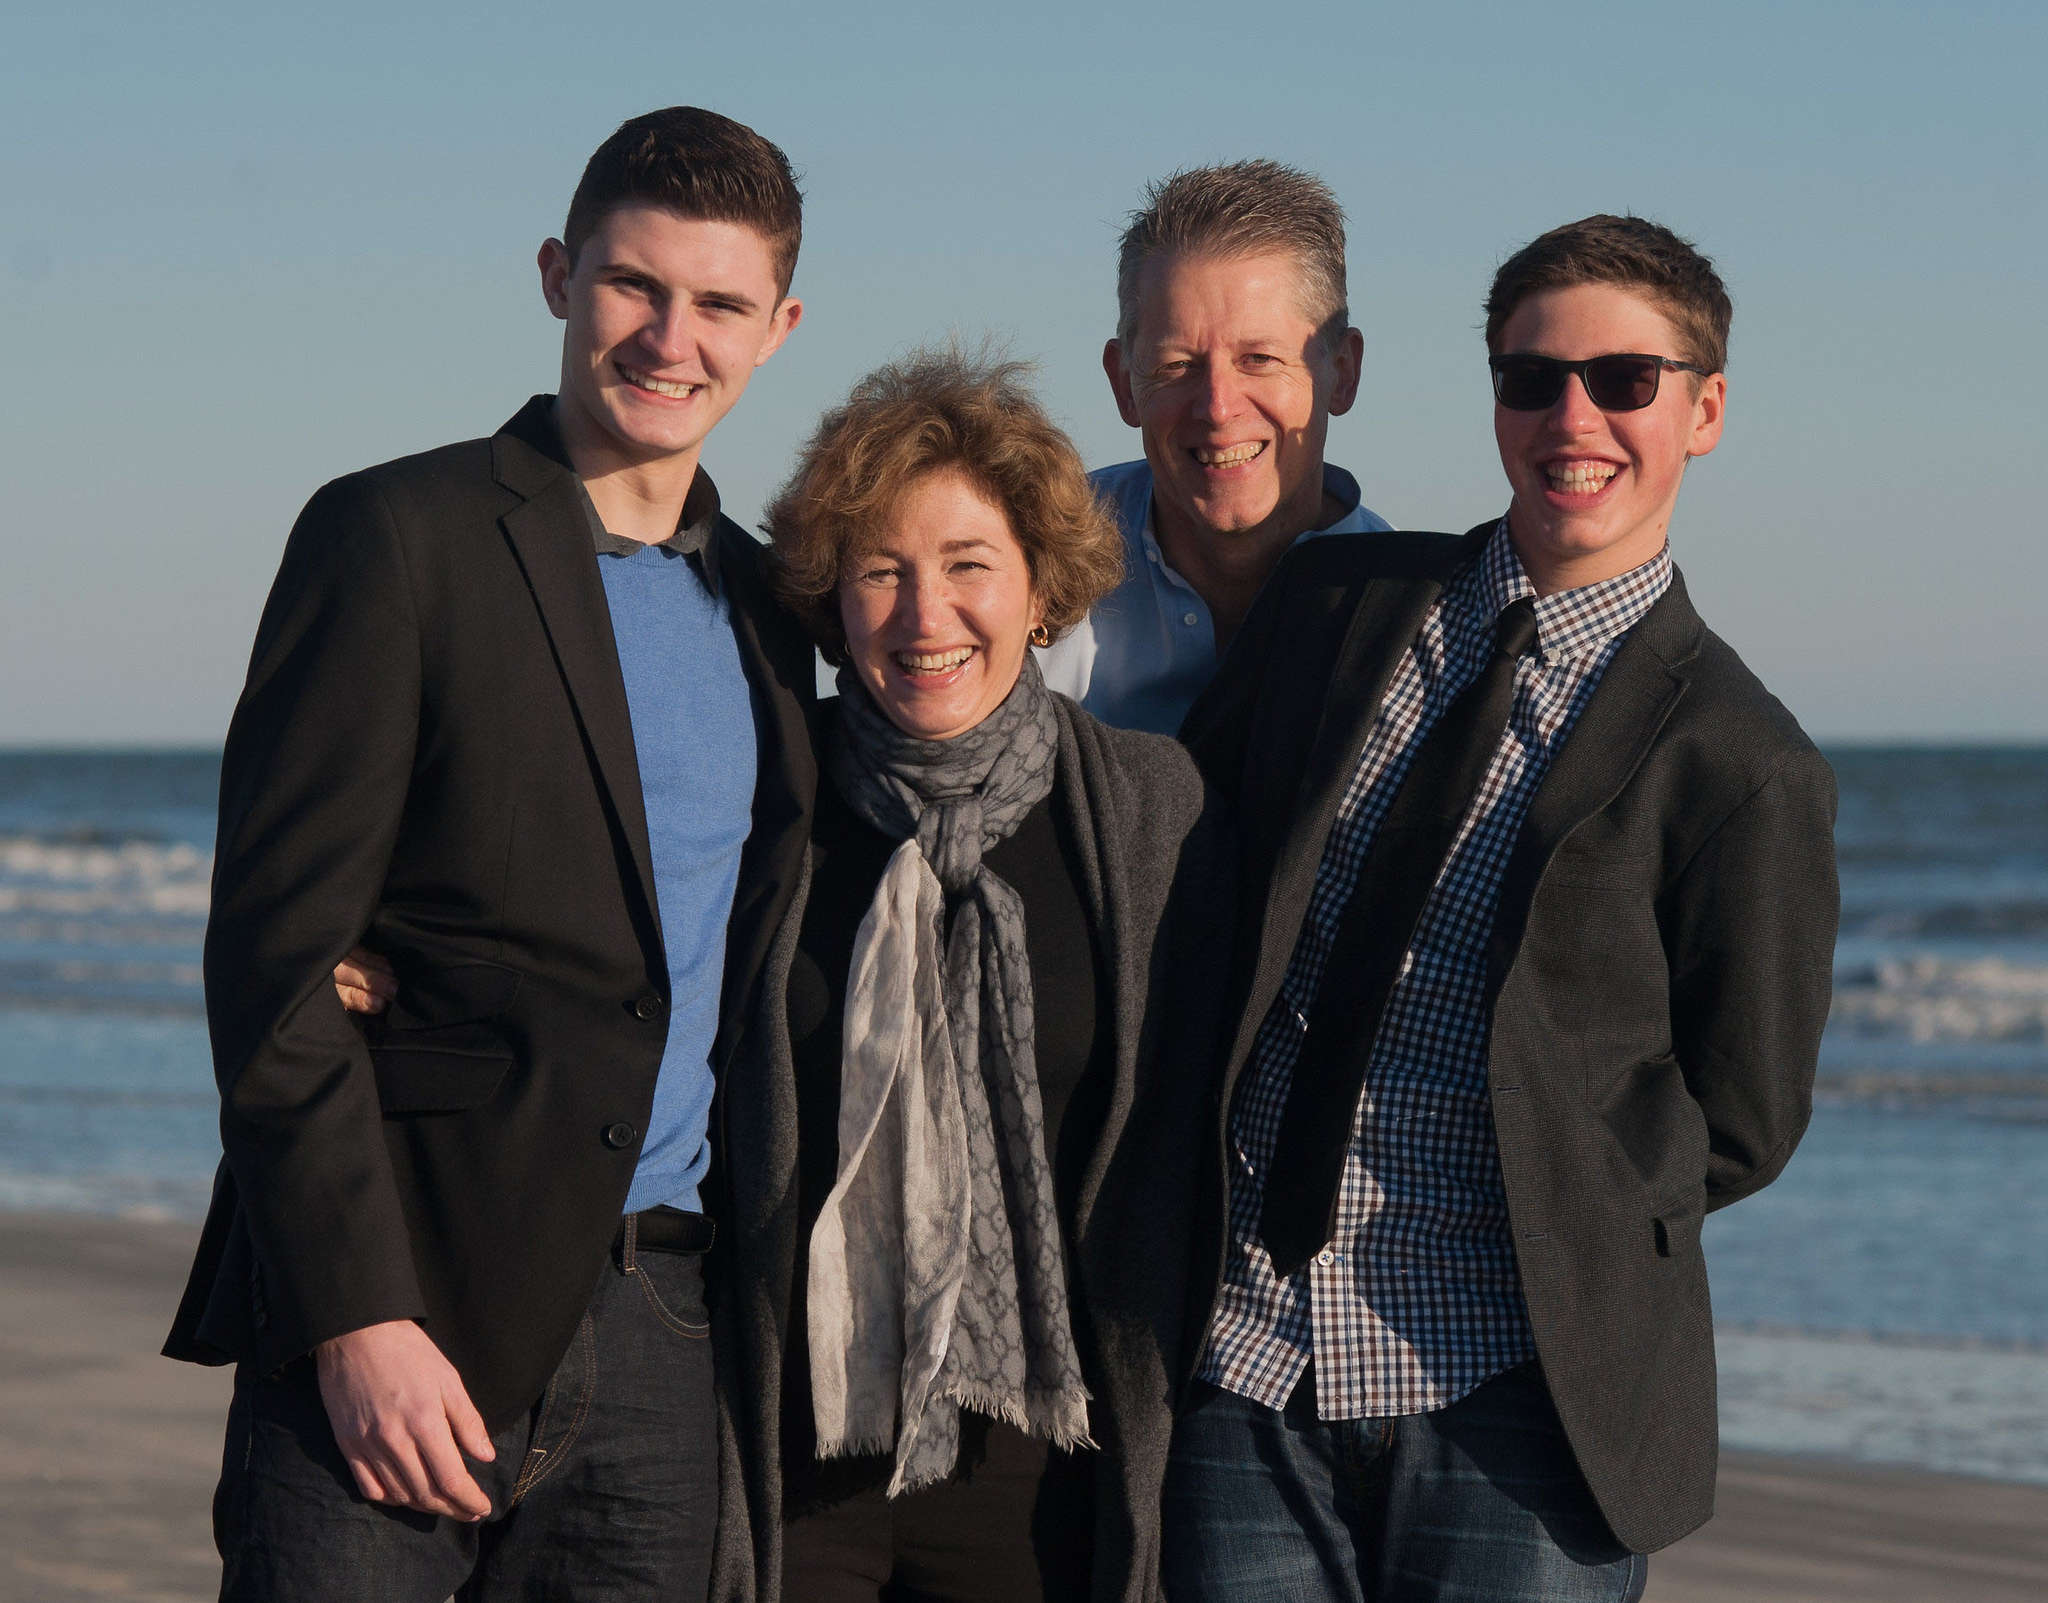 Anne-Marie Slaughter, husband Andrew Moravcsik, and their sons Edward and Alexander. Her new book explores what it takes for workers to compete and care - and to have it all.